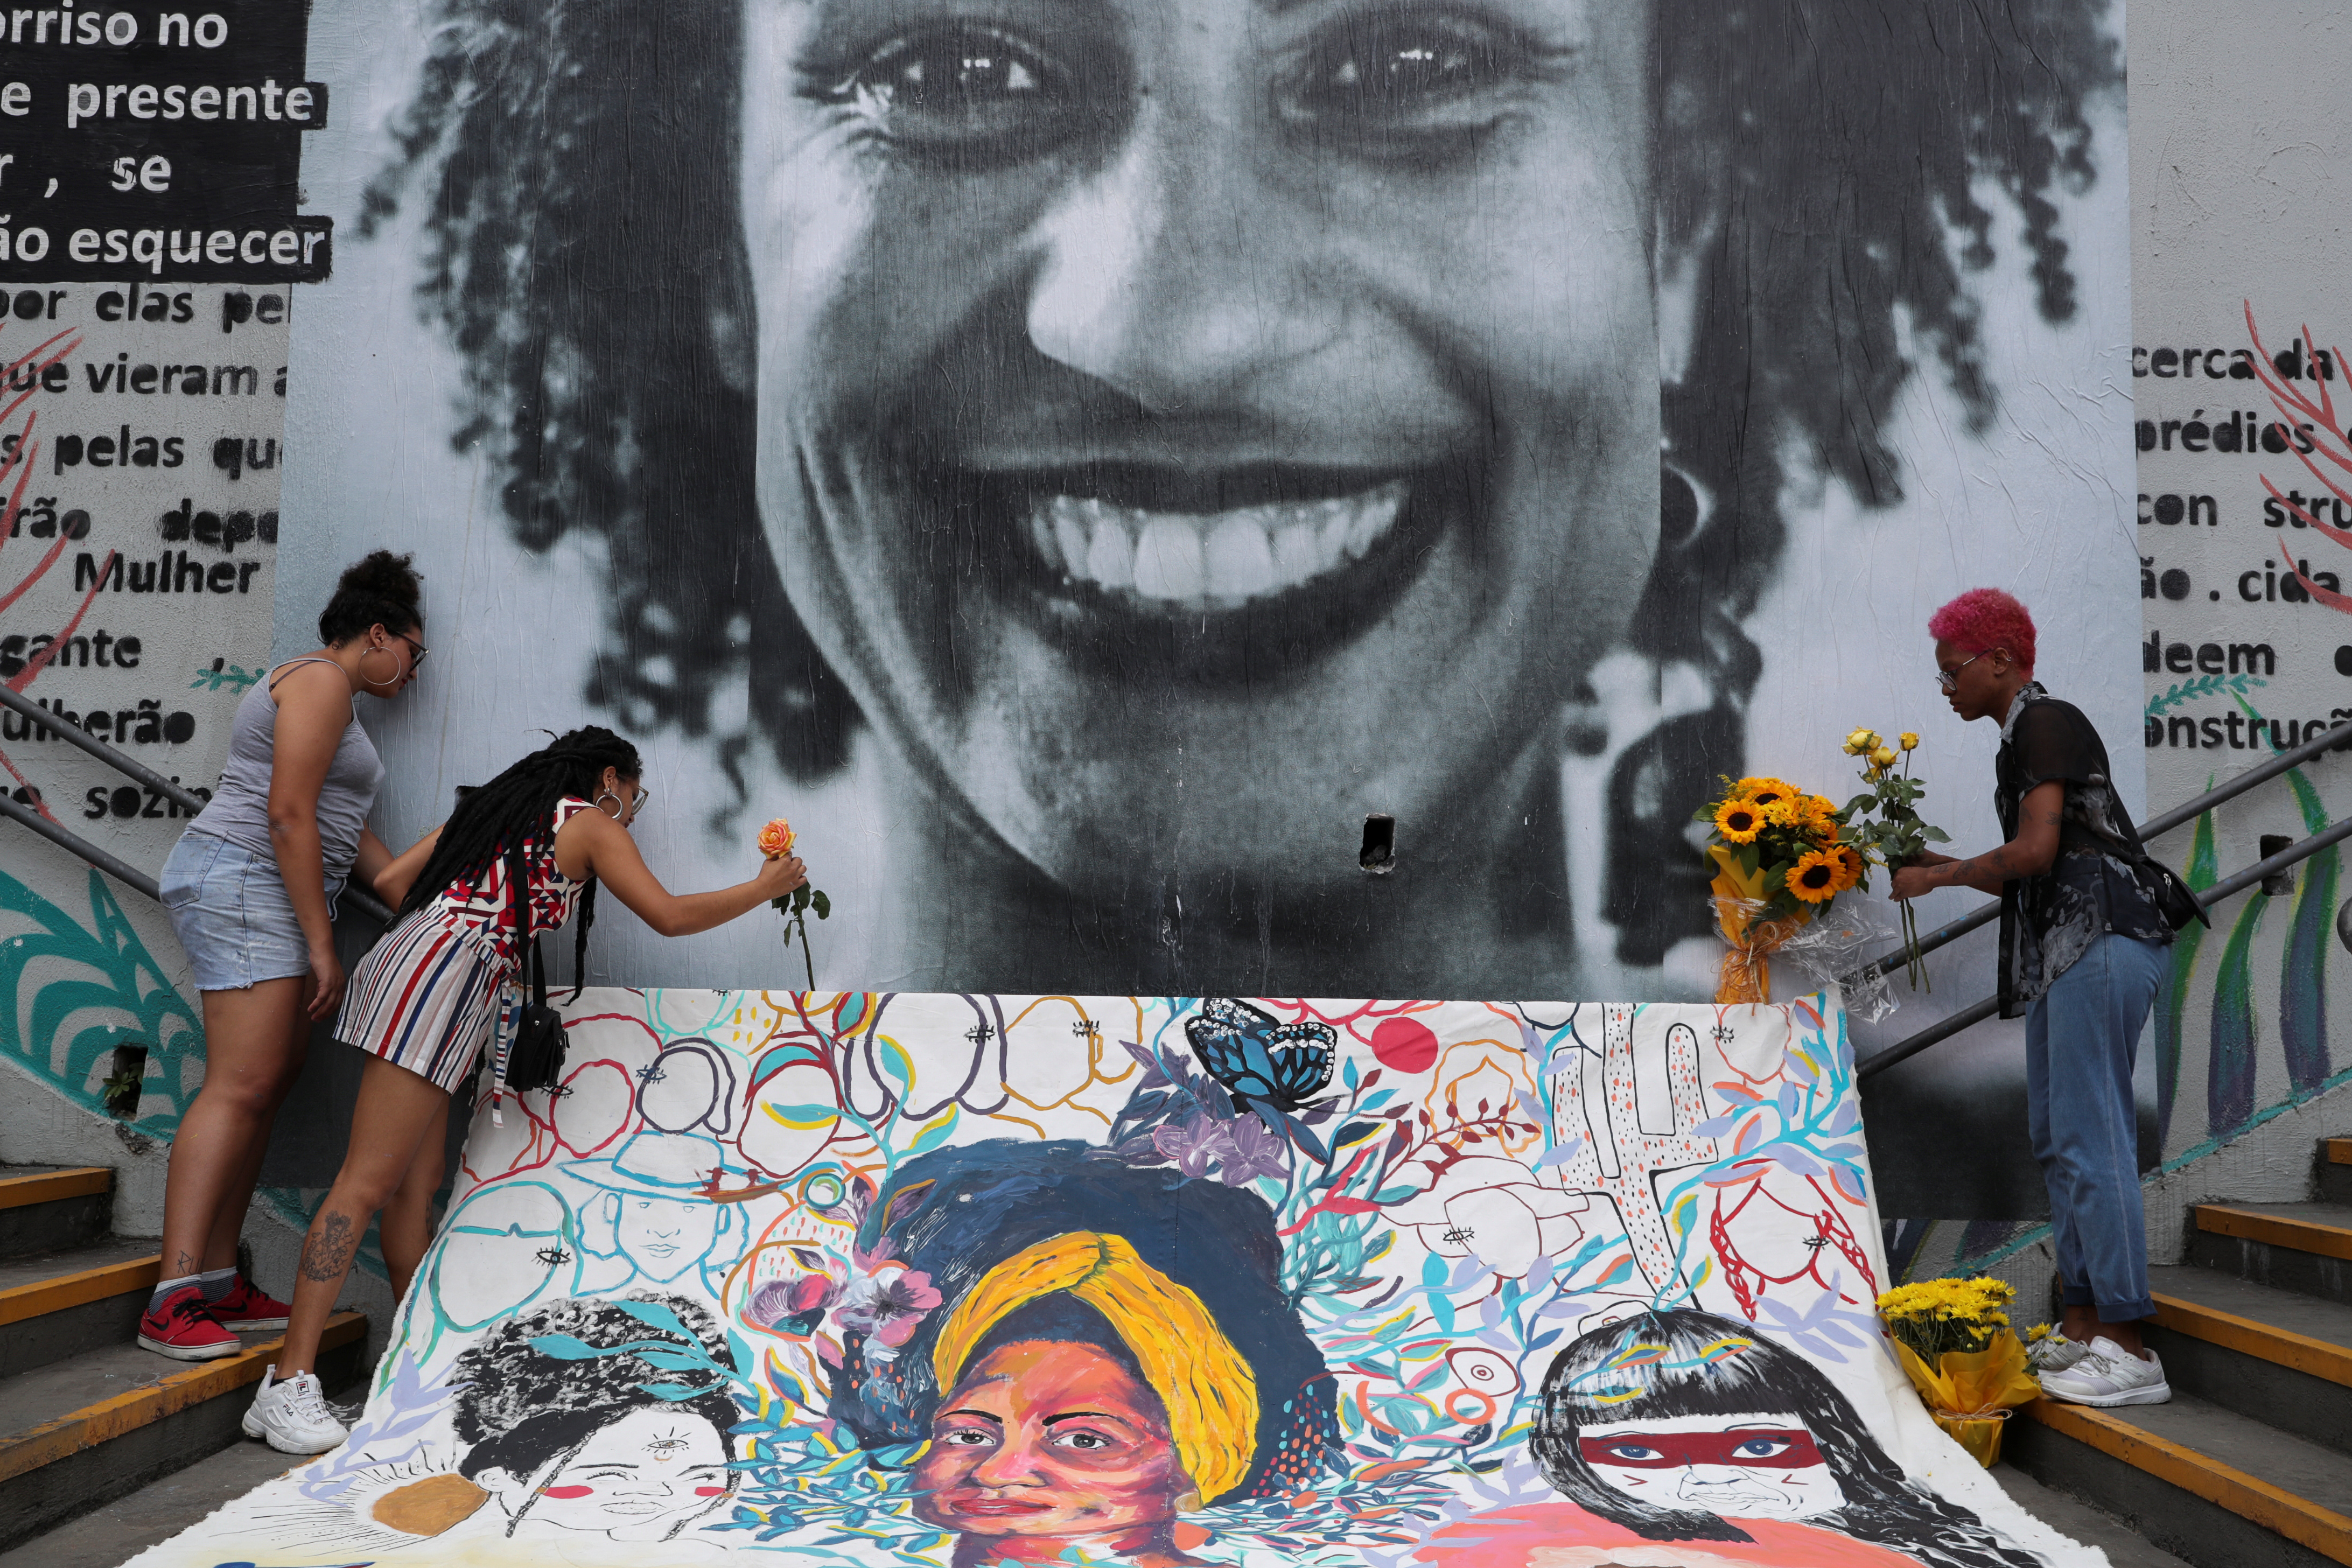 Women lay flowers at a mural of the murdered Brazilian human rights activist Marielle Franco.